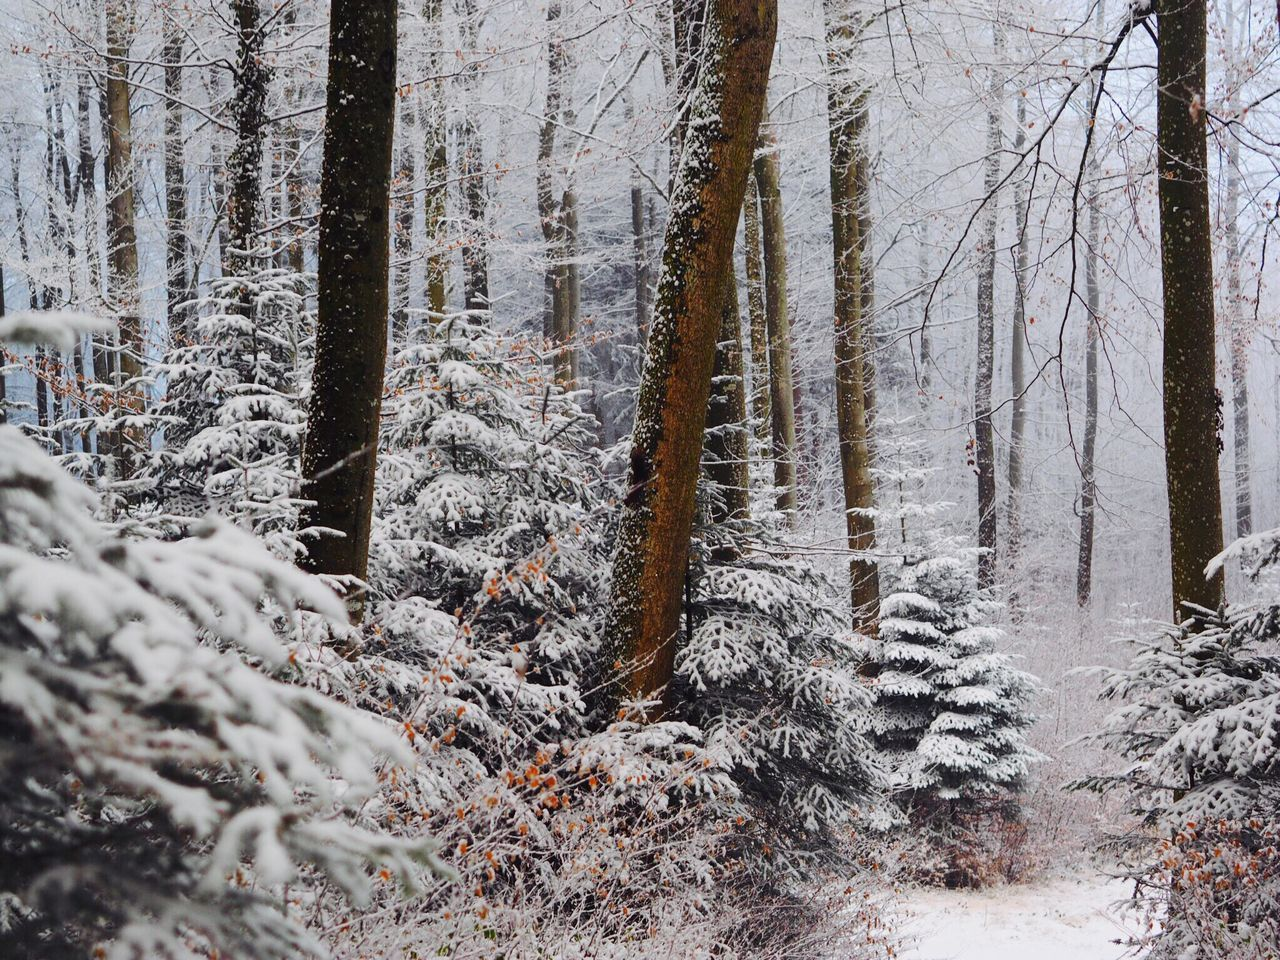 Winter Cold Temperature Tree Snow Forest Nature Beauty In Nature Scenics WoodLand Weather Tranquility Frozen Tranquil Scene Branch Outdoors Day No People Winter Wonderland at Gempen,switzerland